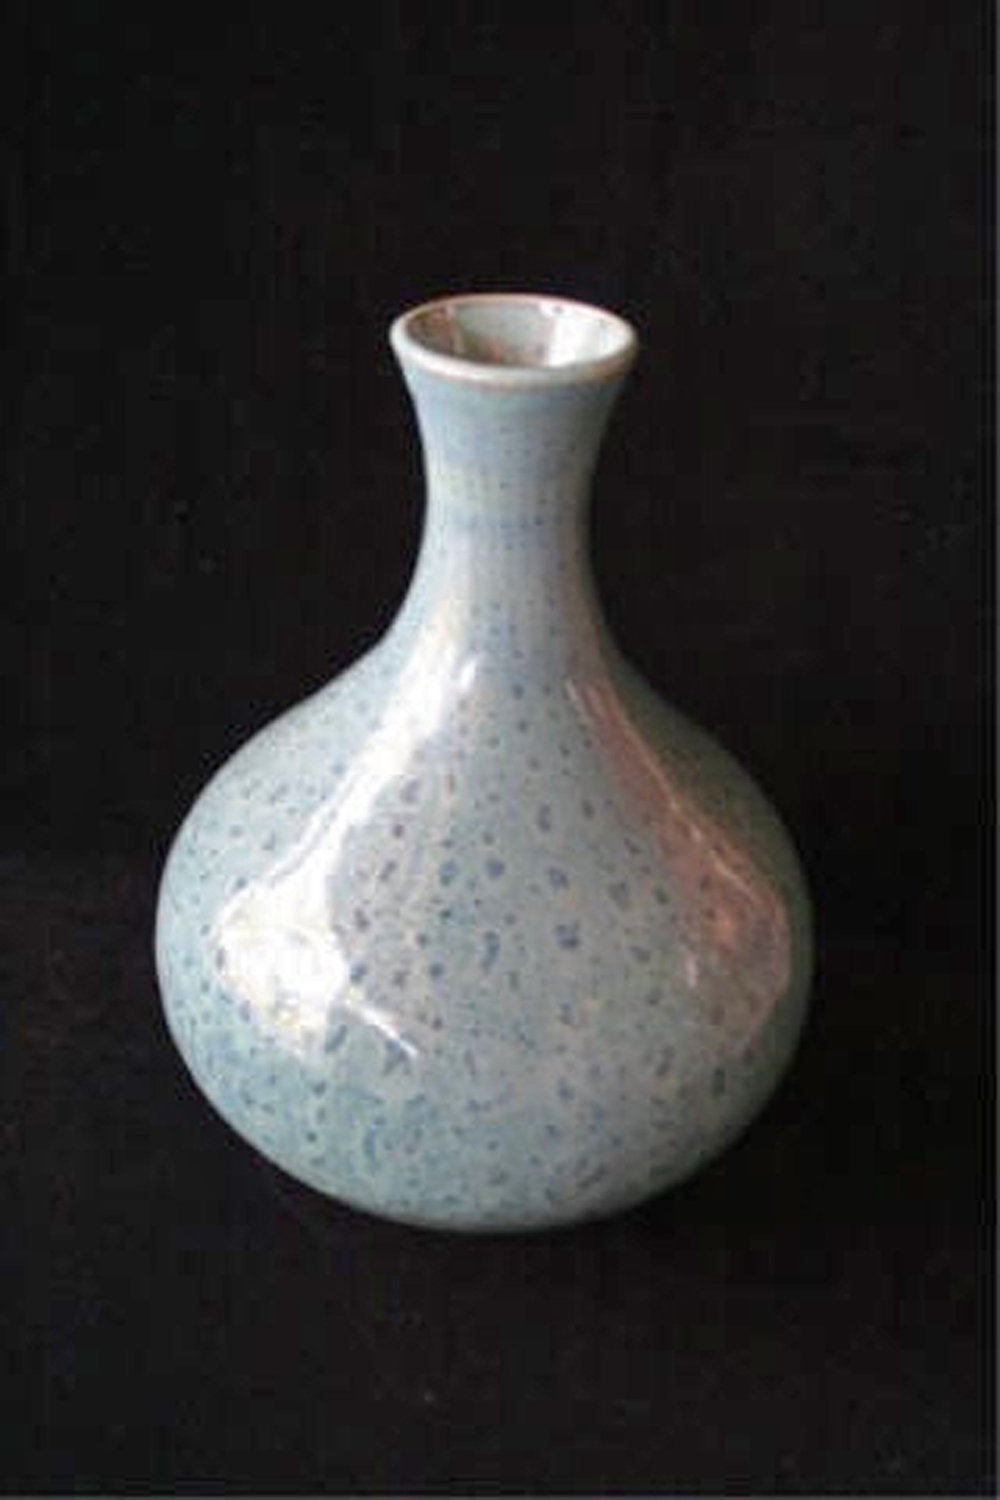 "I See Spots  , 2007, wheel-thrown bentonite clay Fired at cone 6 oxidation, 8"" h x 5 3/4"" dia Collection of Mr. and Mrs. David and Joan Black, Ontario, Canada"